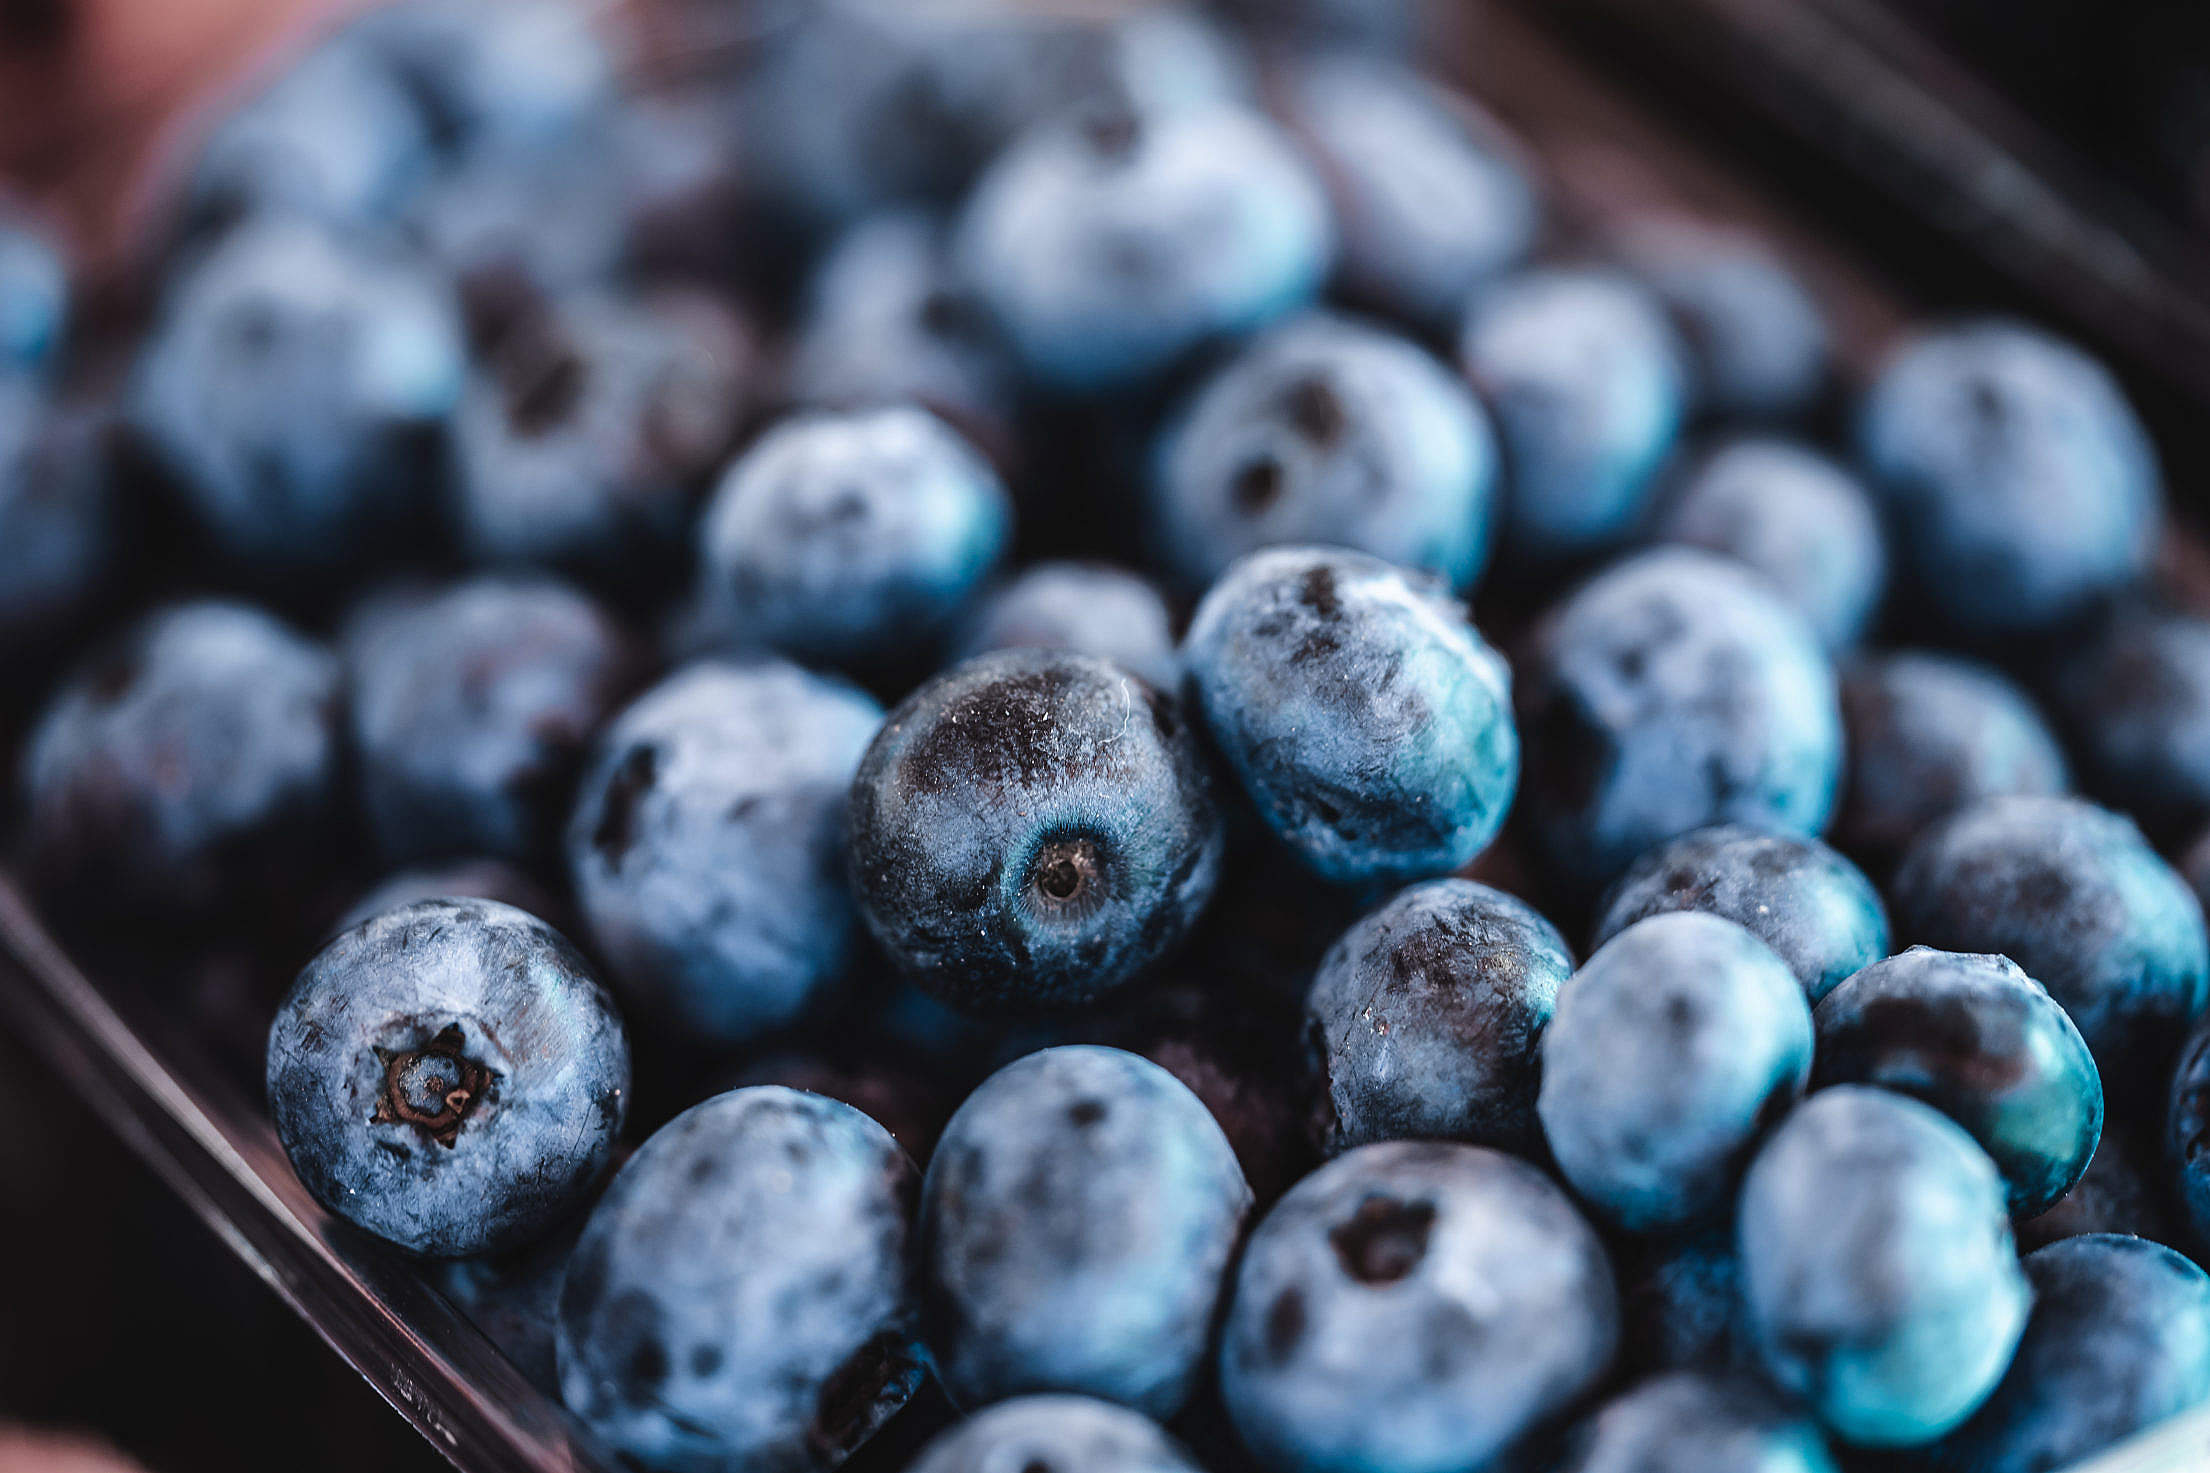 Pile of Blueberries Free Stock Photo